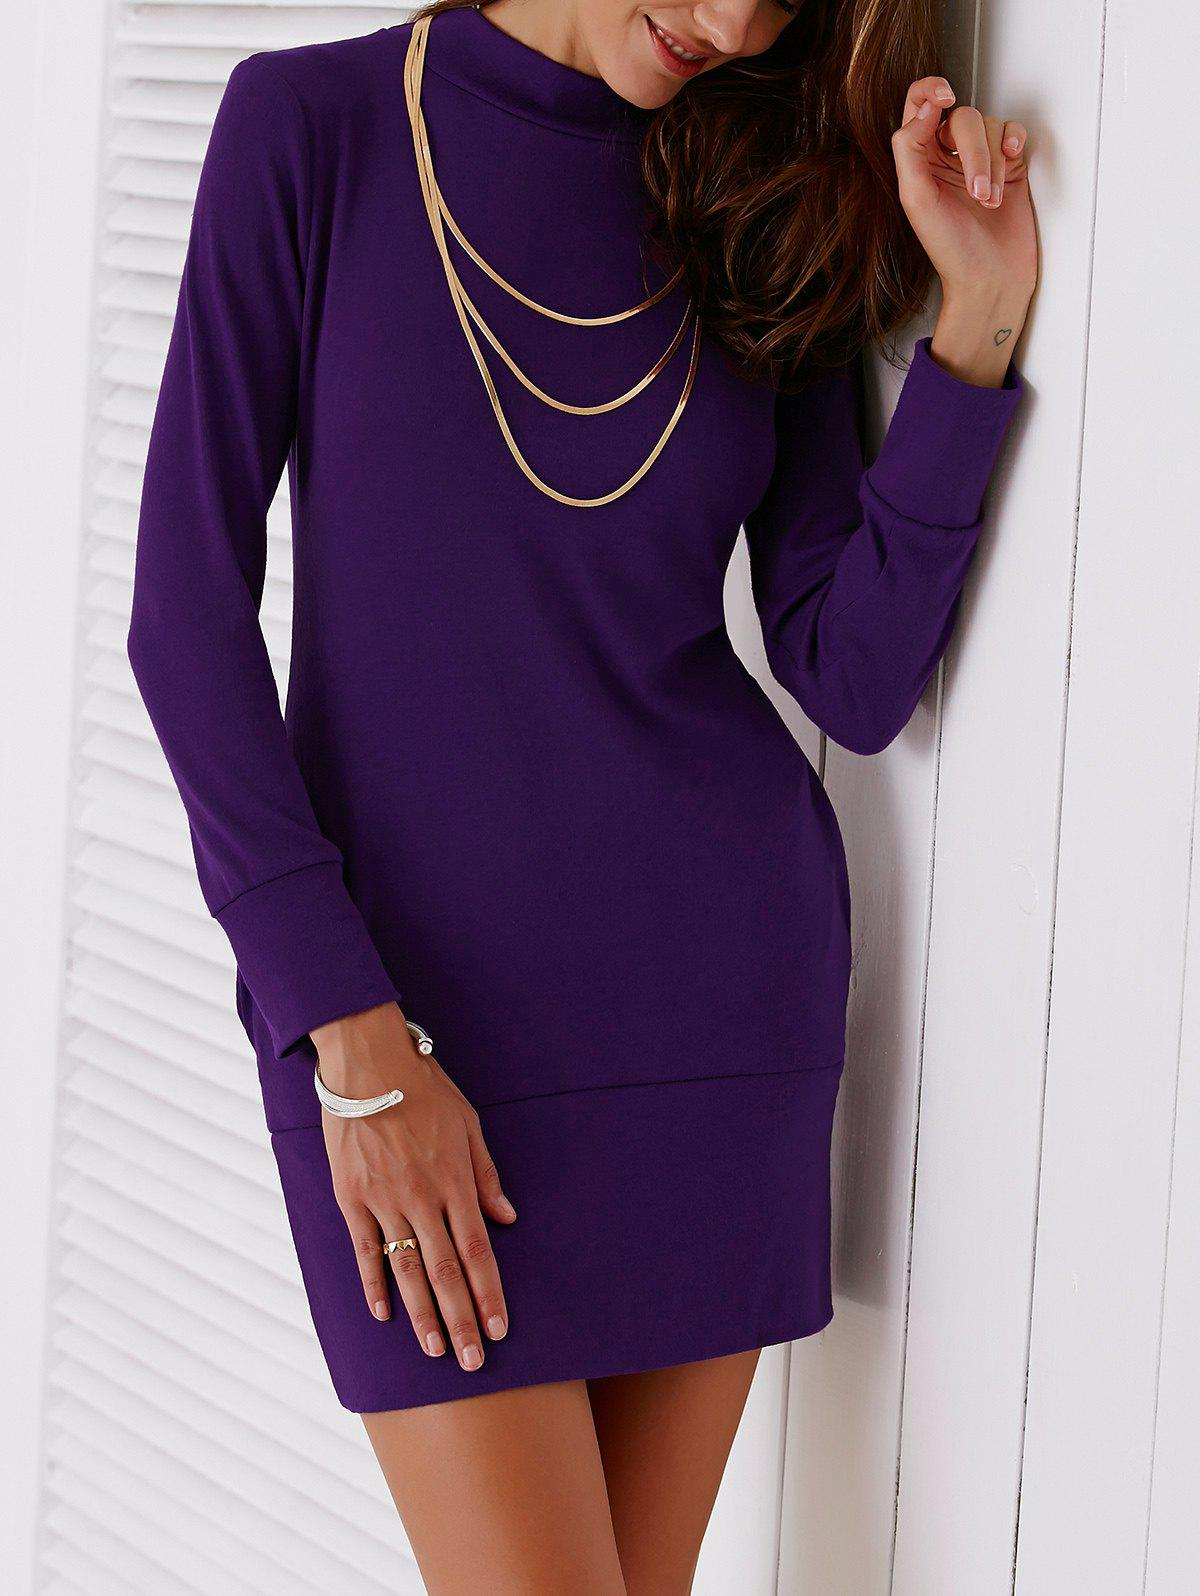 Turtleneck Sheath Mini Dress - PURPLE S